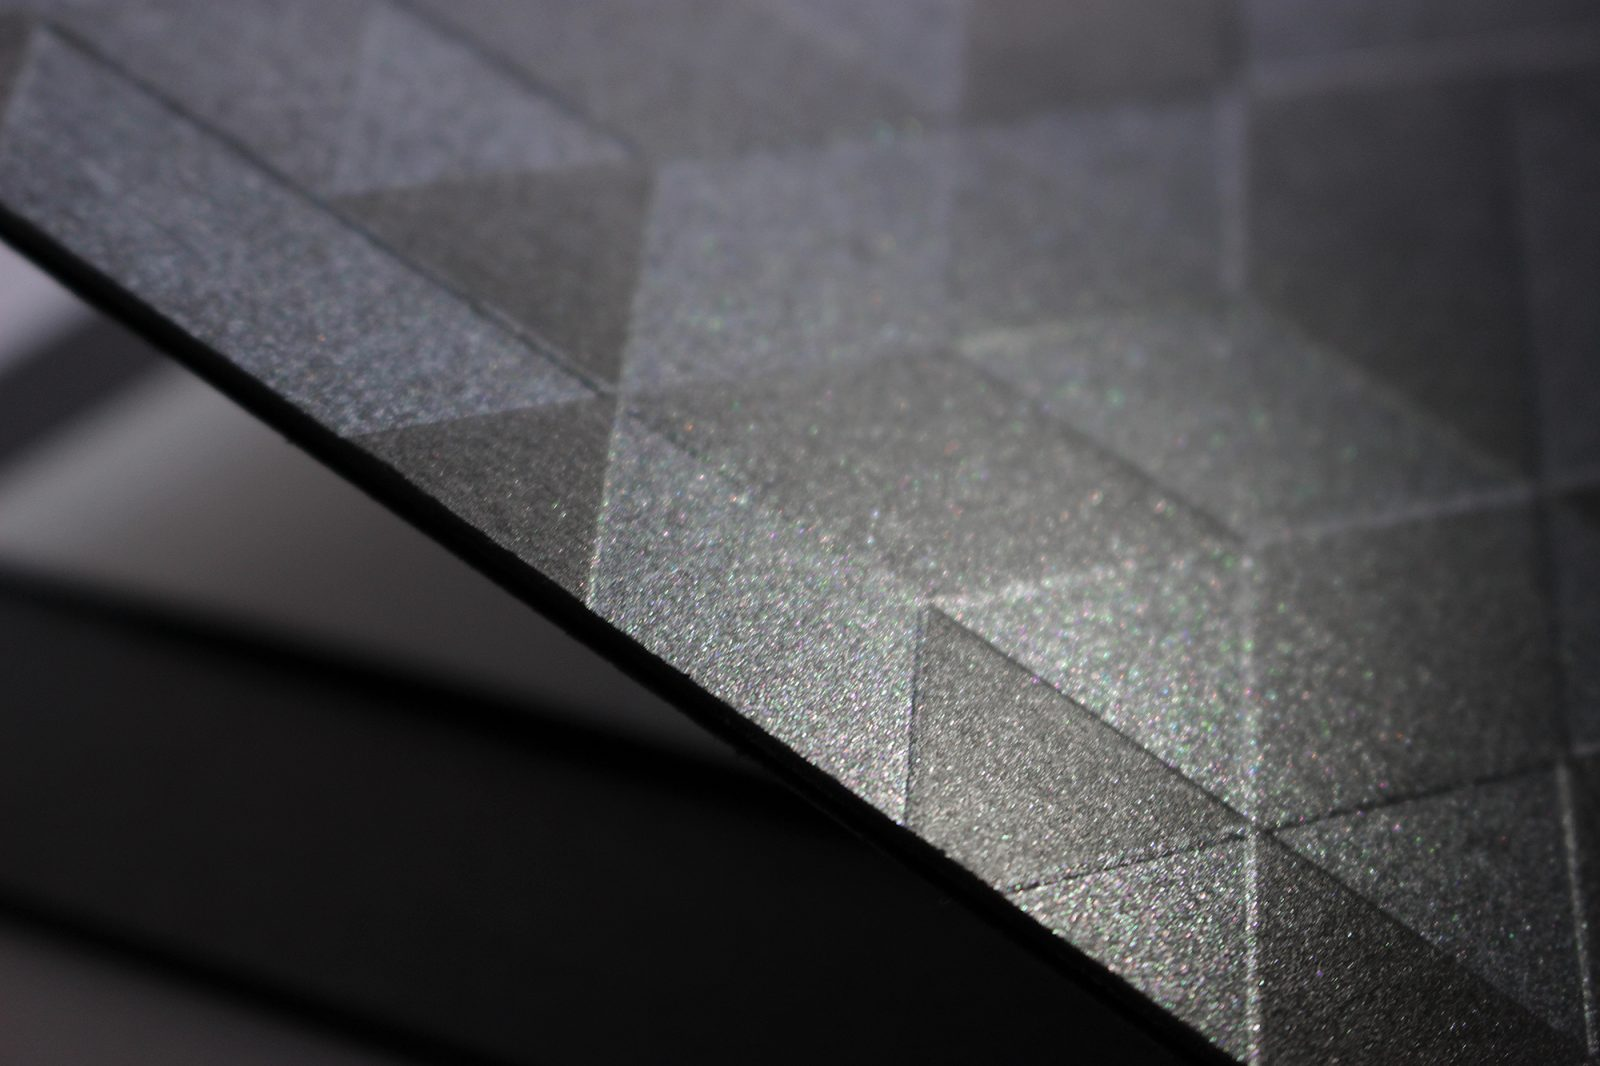 Galaxy Metallic Space Black by Europapier glimmers delicately like a starry sky in J&T Banks card, designed and printed by i+i print.